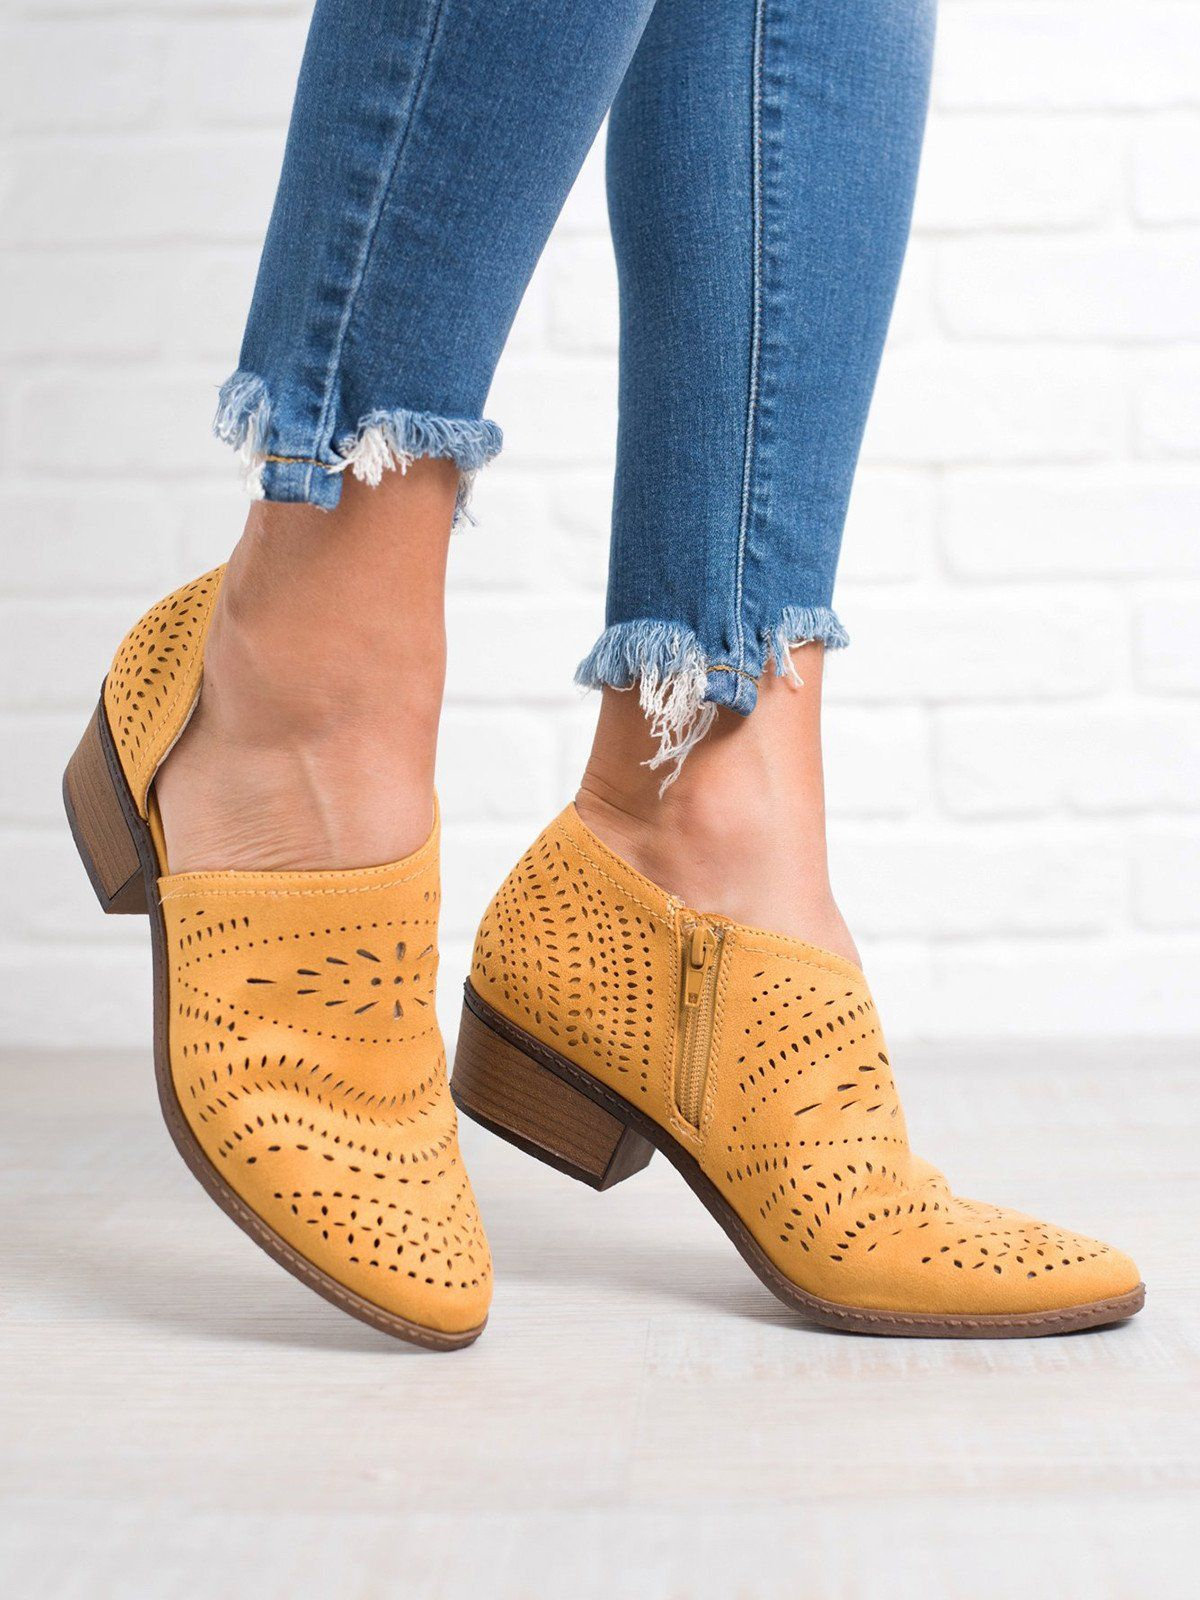 Hollow Out Low Heel Cutout Booties Faux Suede Zipper Ankle